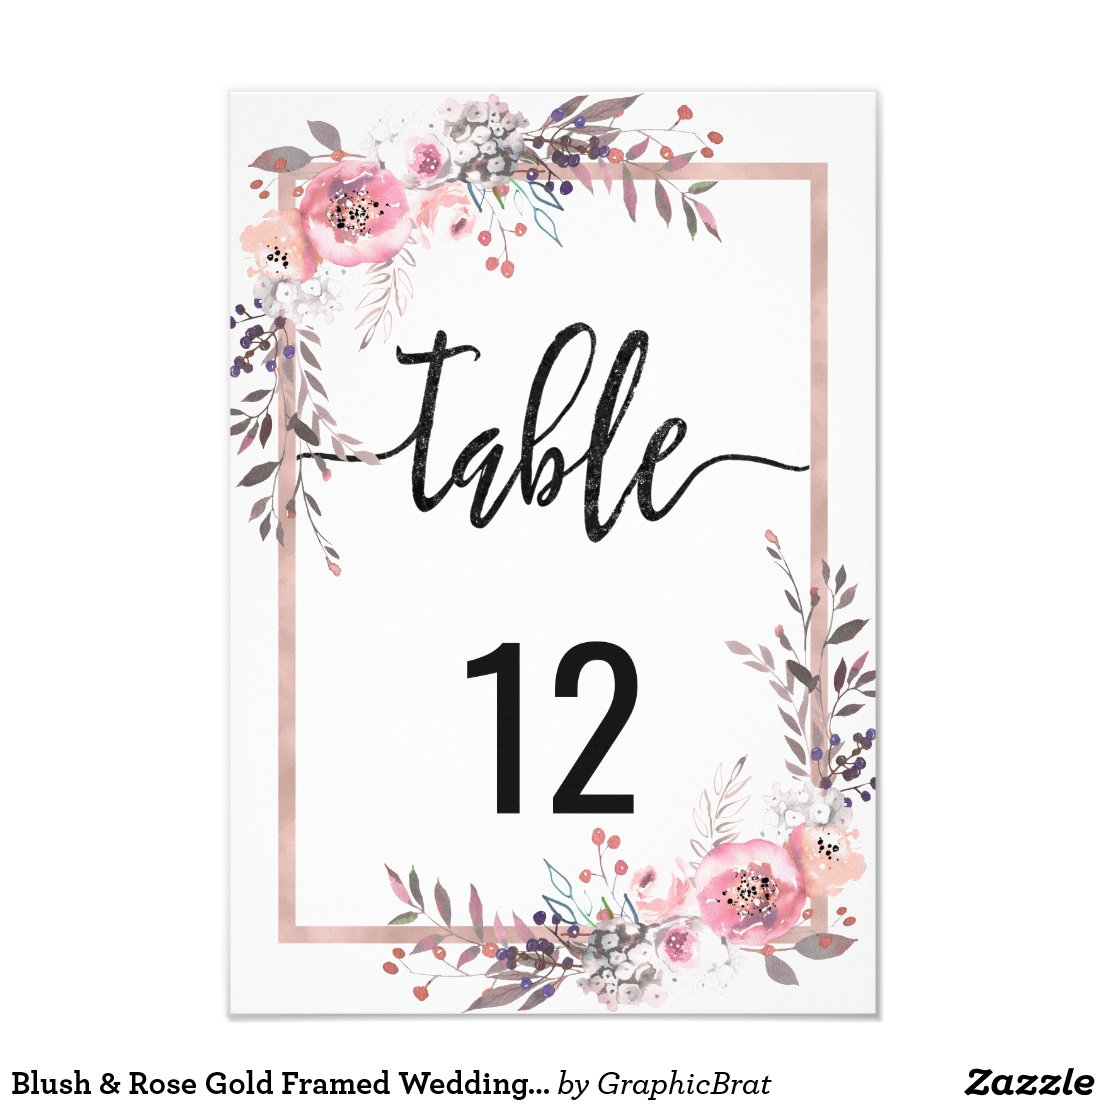 Blush & Rose Gold Framed Wedding Table Numbers